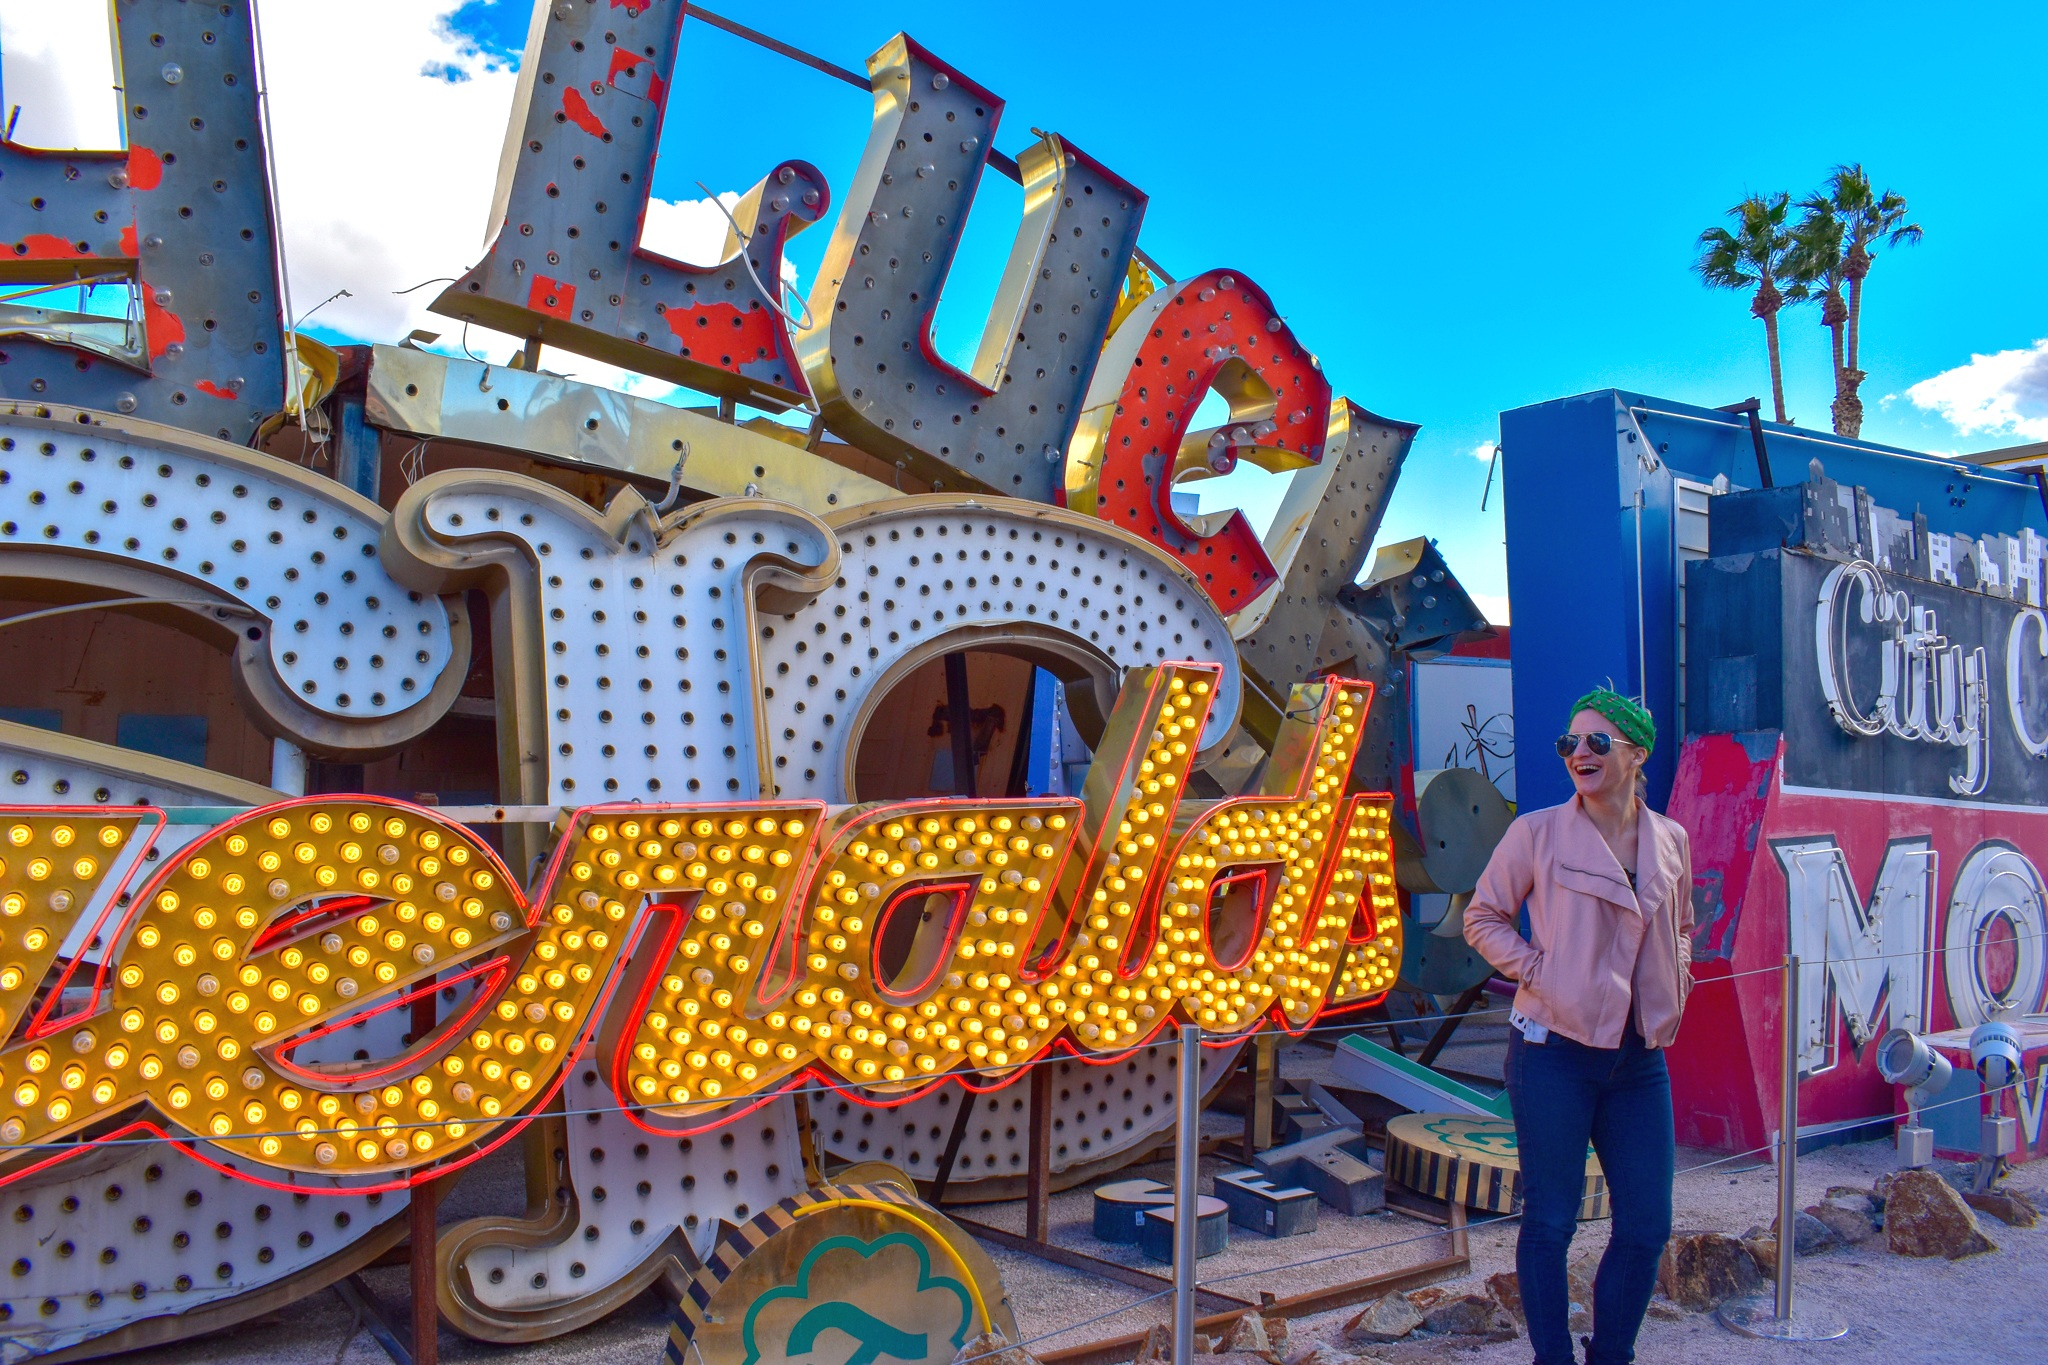 Uprooted-Traveler-How-To-Plan-a-las-Vegas-Bachelorette-Party-neon-boneyard.jpg